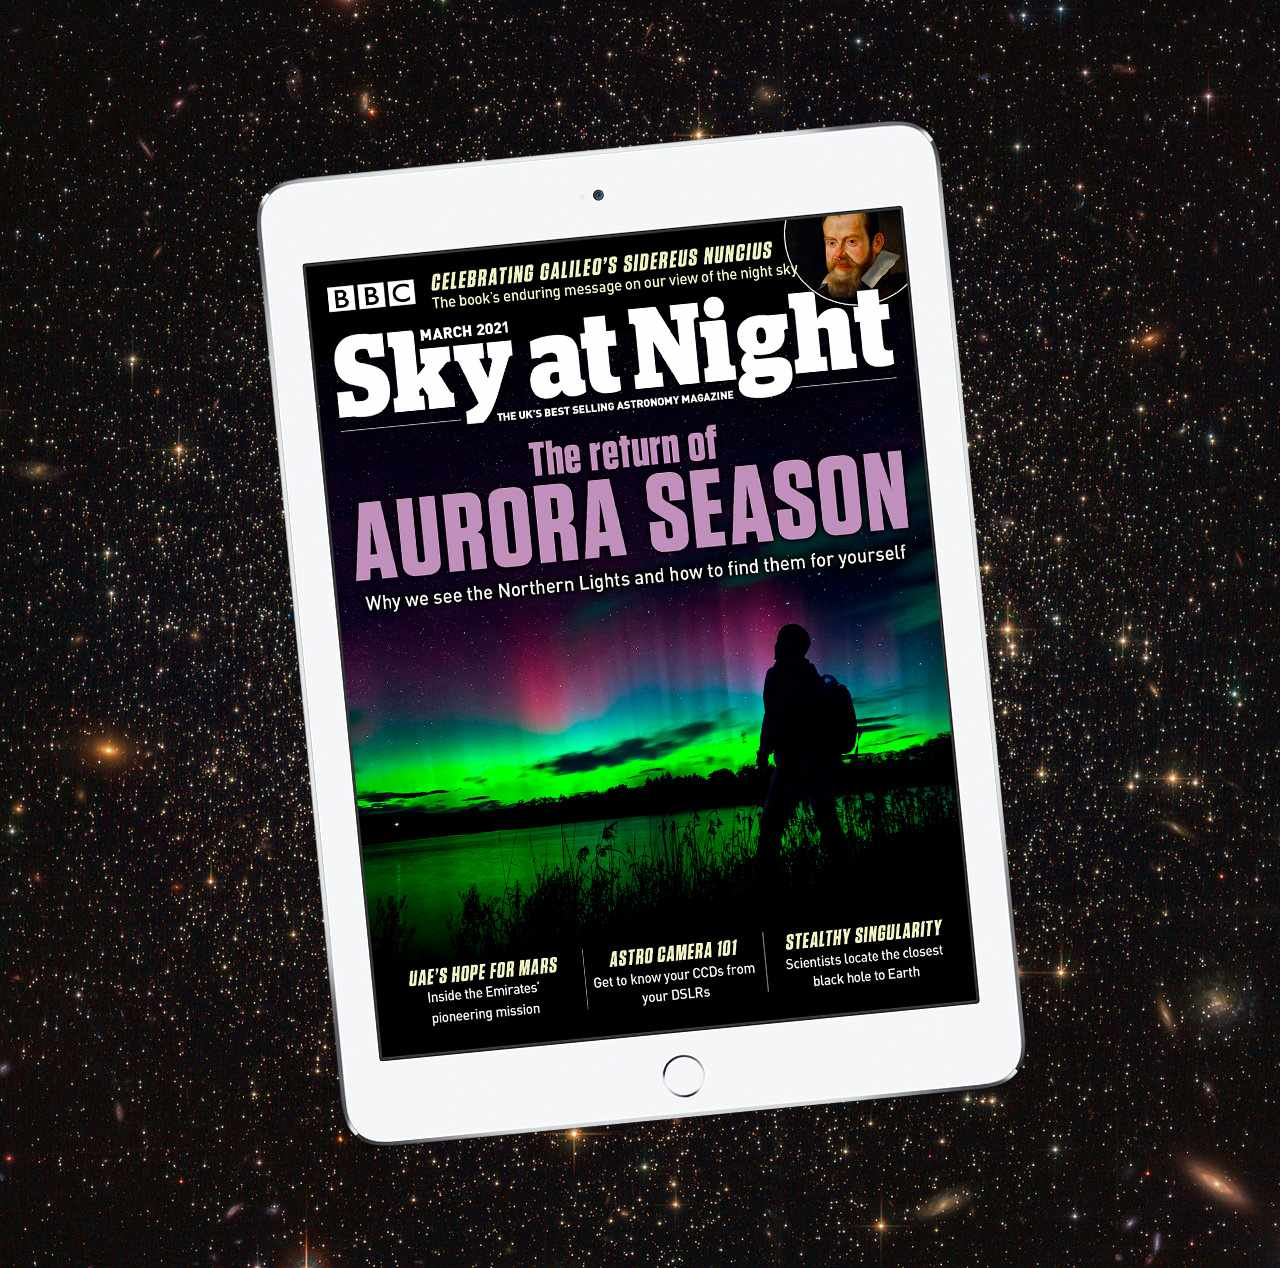 BBC Sky at Night Magazine March 2021 issue